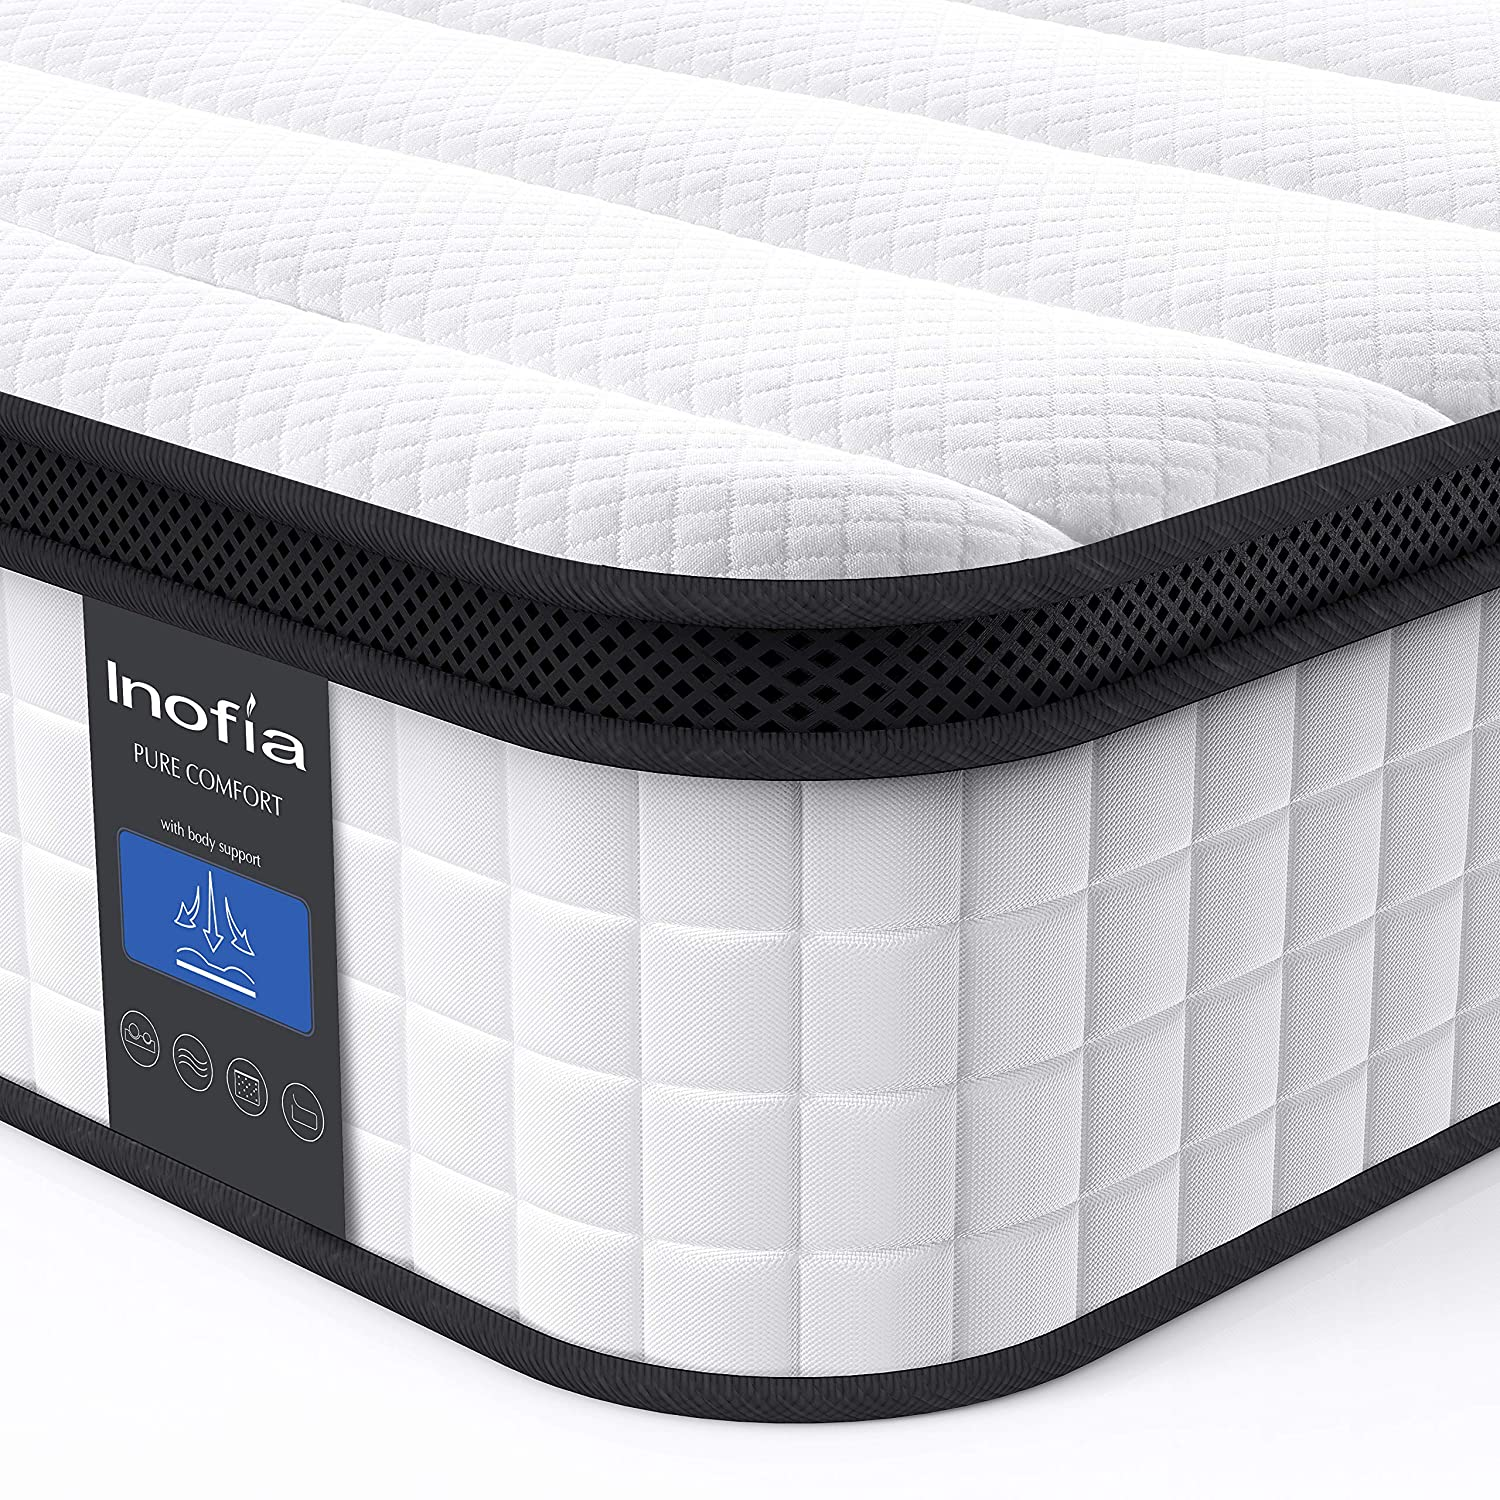 Inofia Full Mattress, 12 Inch Hybrid Innerspring Double Mattress in a Box, Cool Bed with Breathable Soft Knitted Fabric Cover, CertiPUR-US Certified, 100 Risk-Free Nights Trial